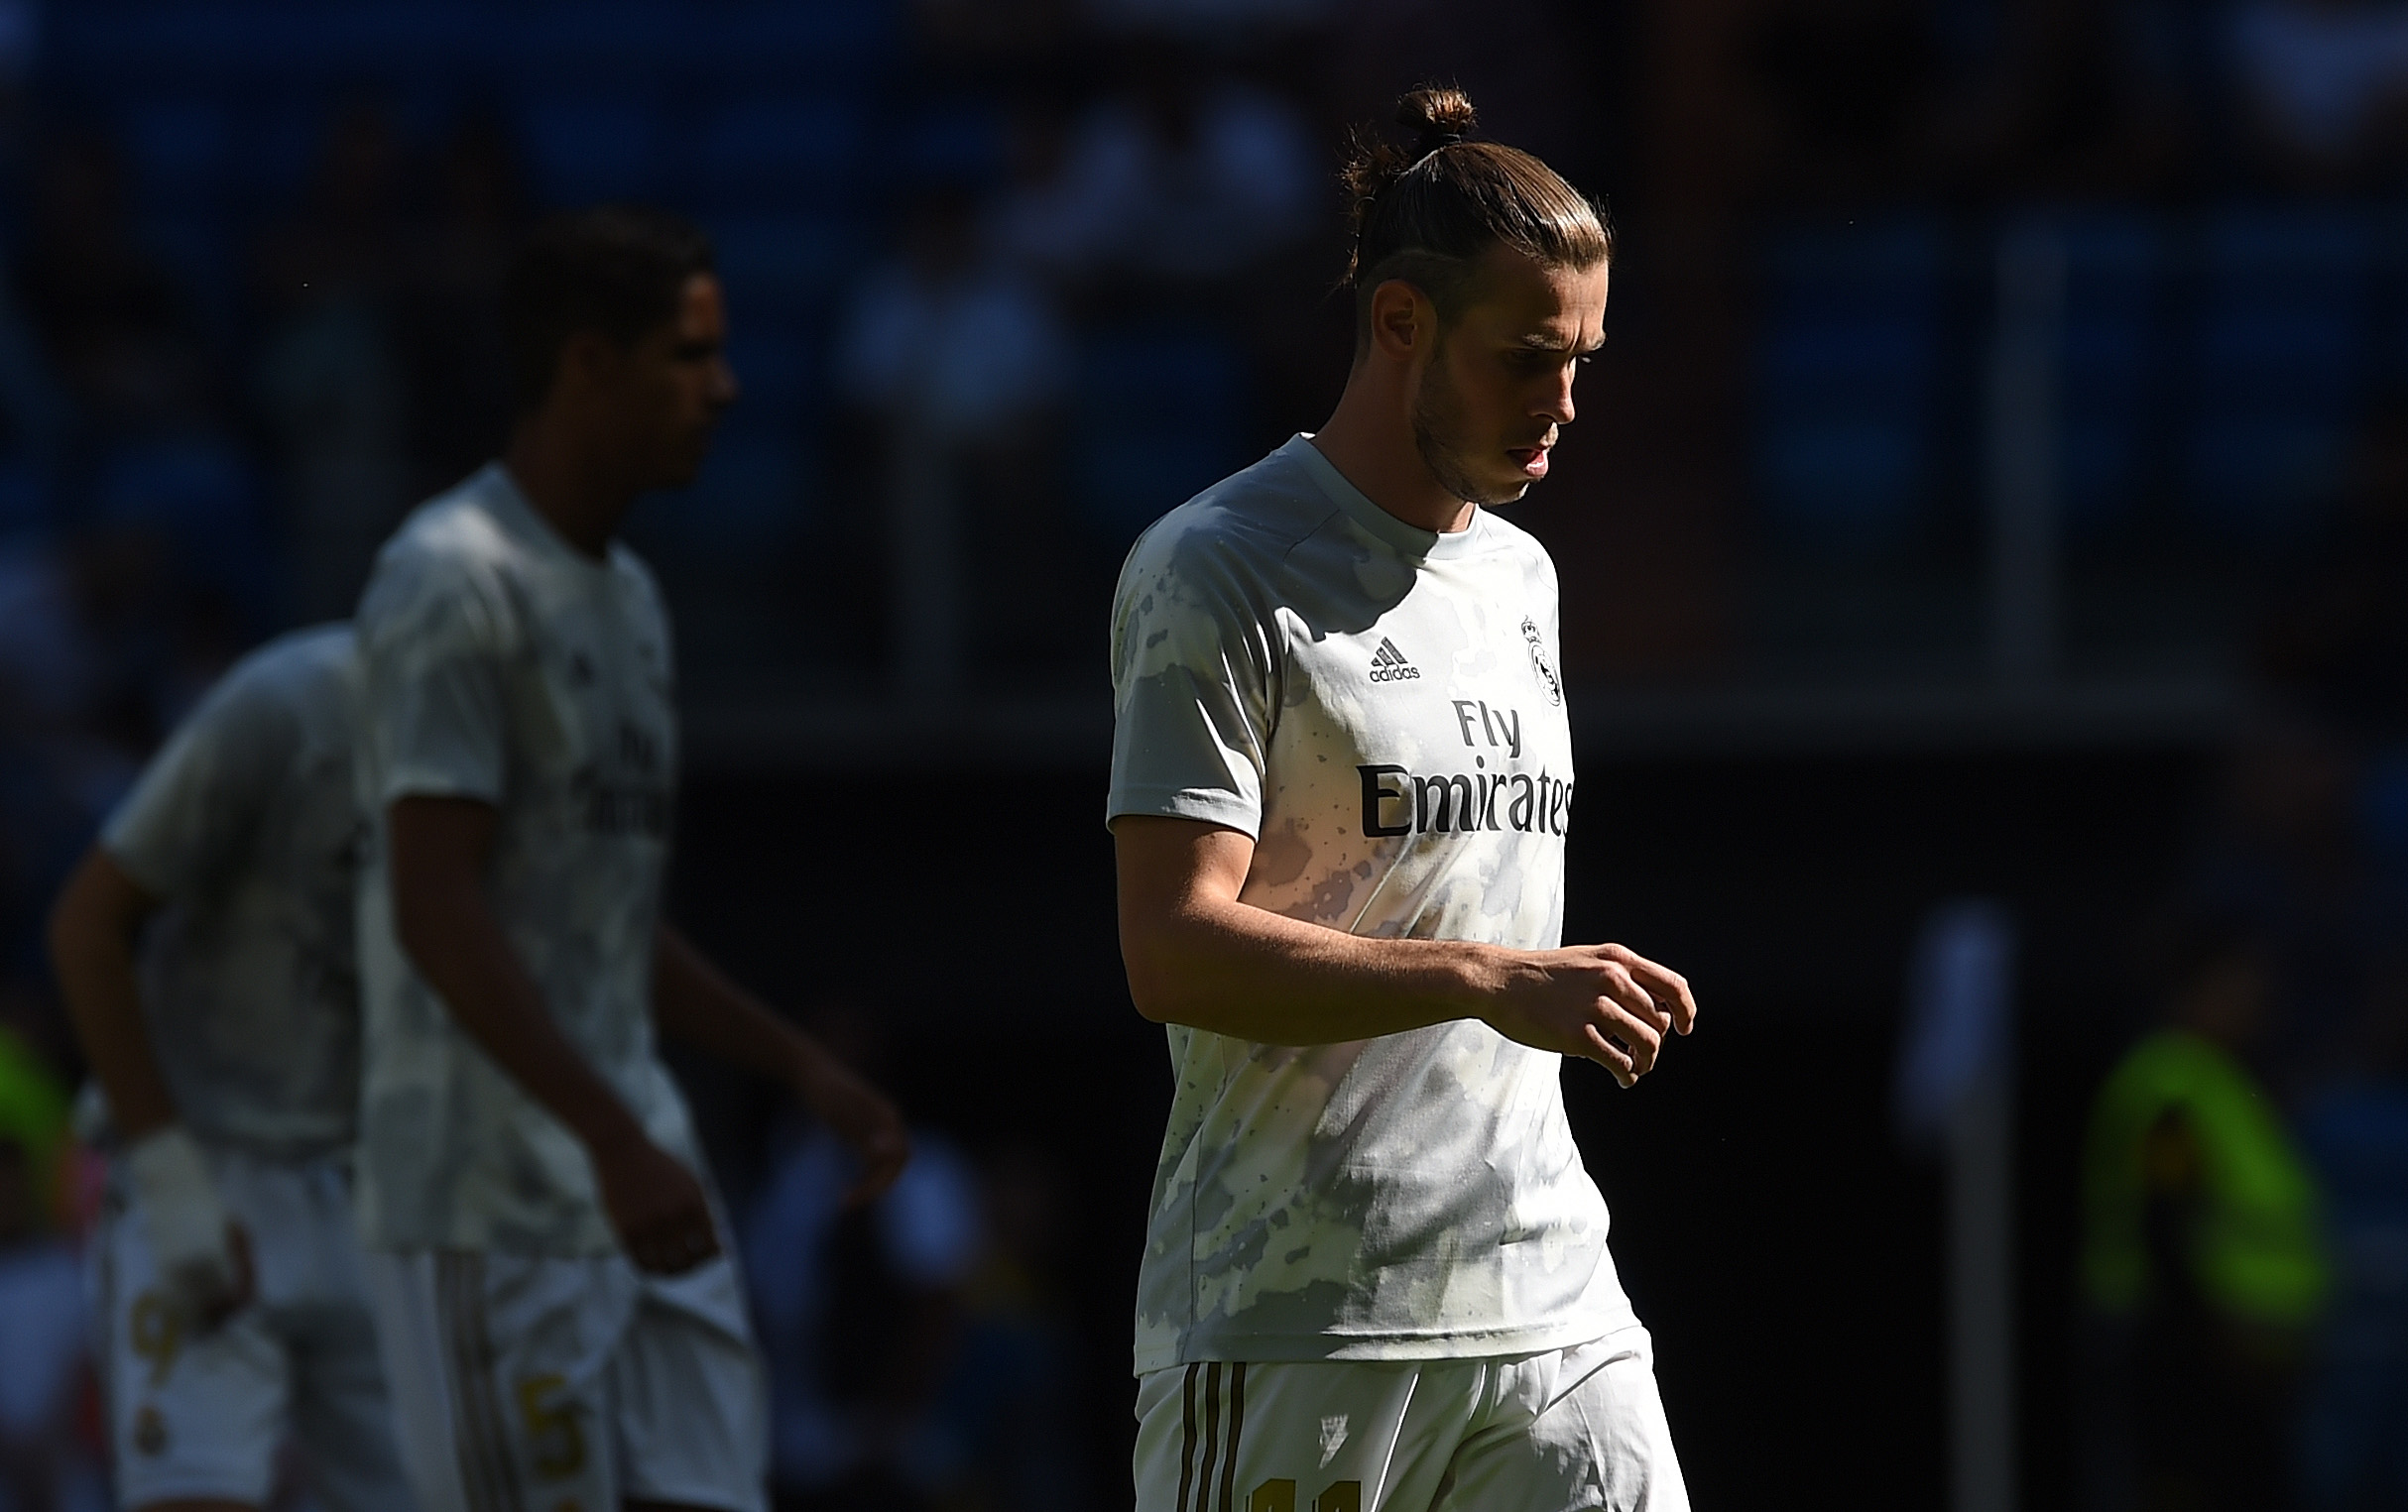 Bale headed to Manchester United? (Photo by Denis Doyle/Getty Images)